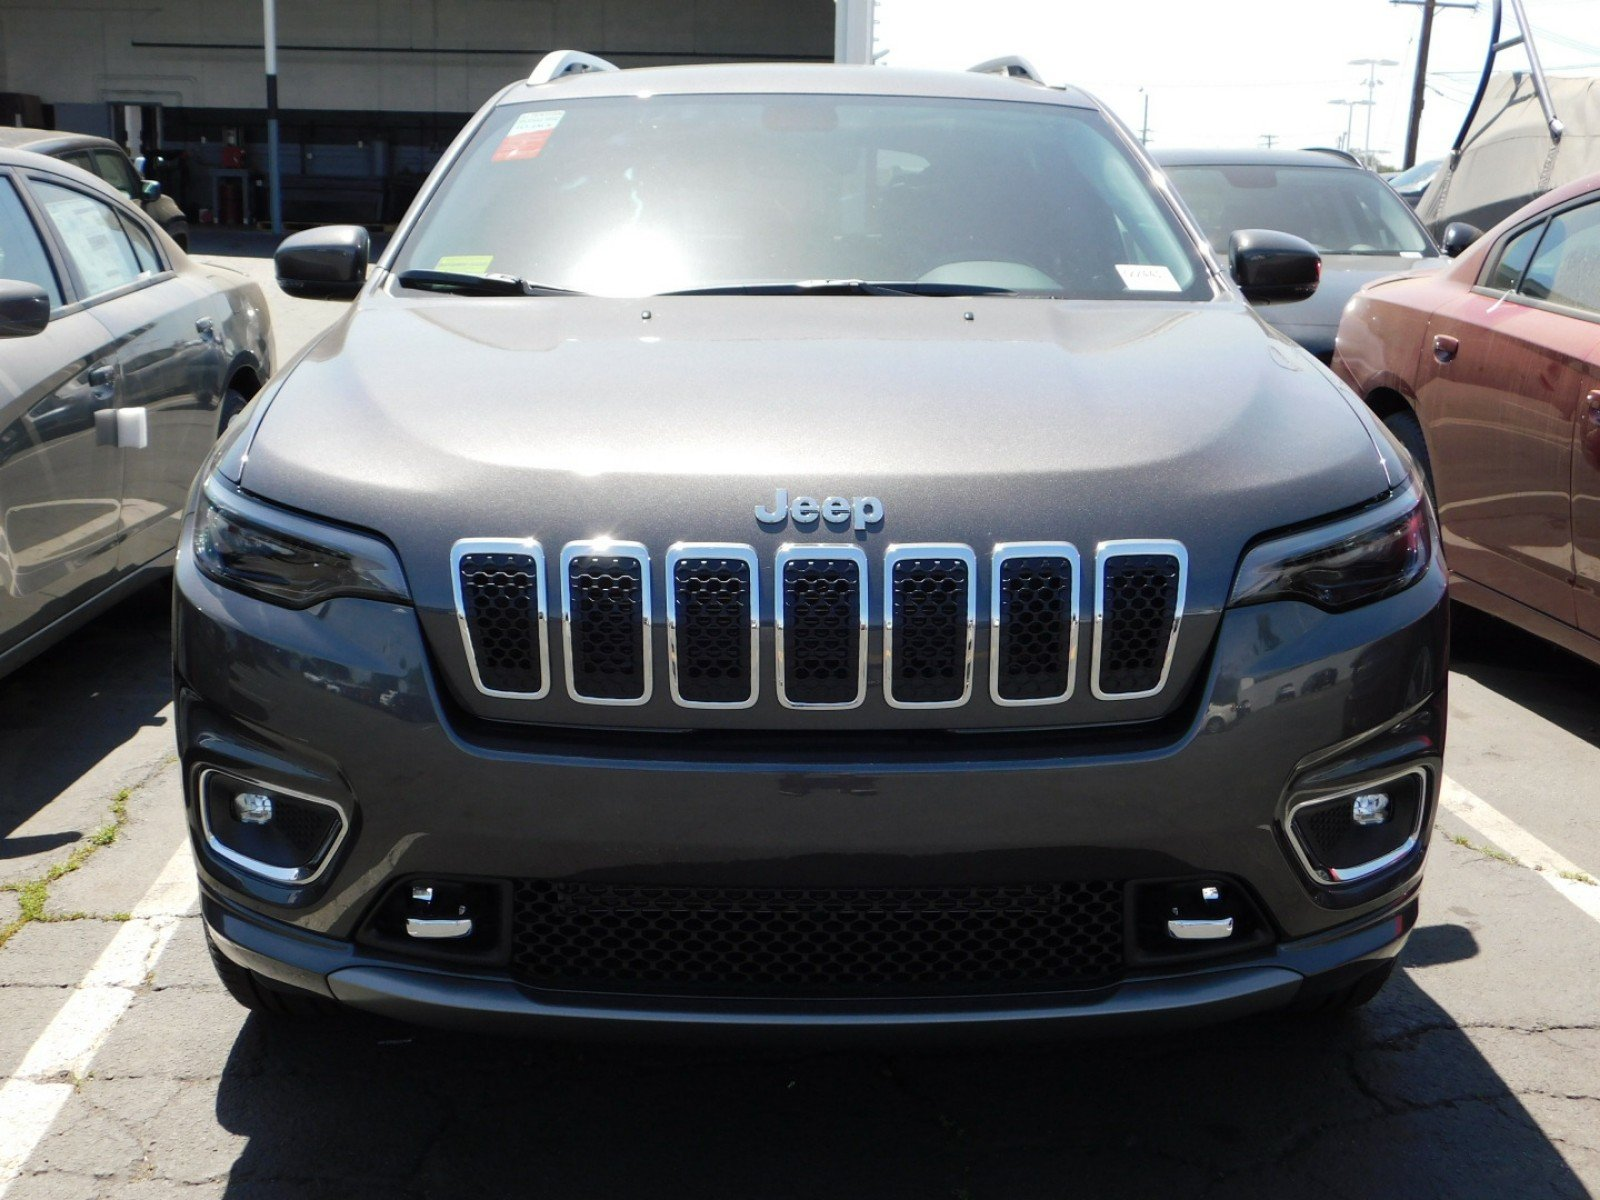 New 2019 JEEP Cherokee Overland Overland 4x4 in Downey